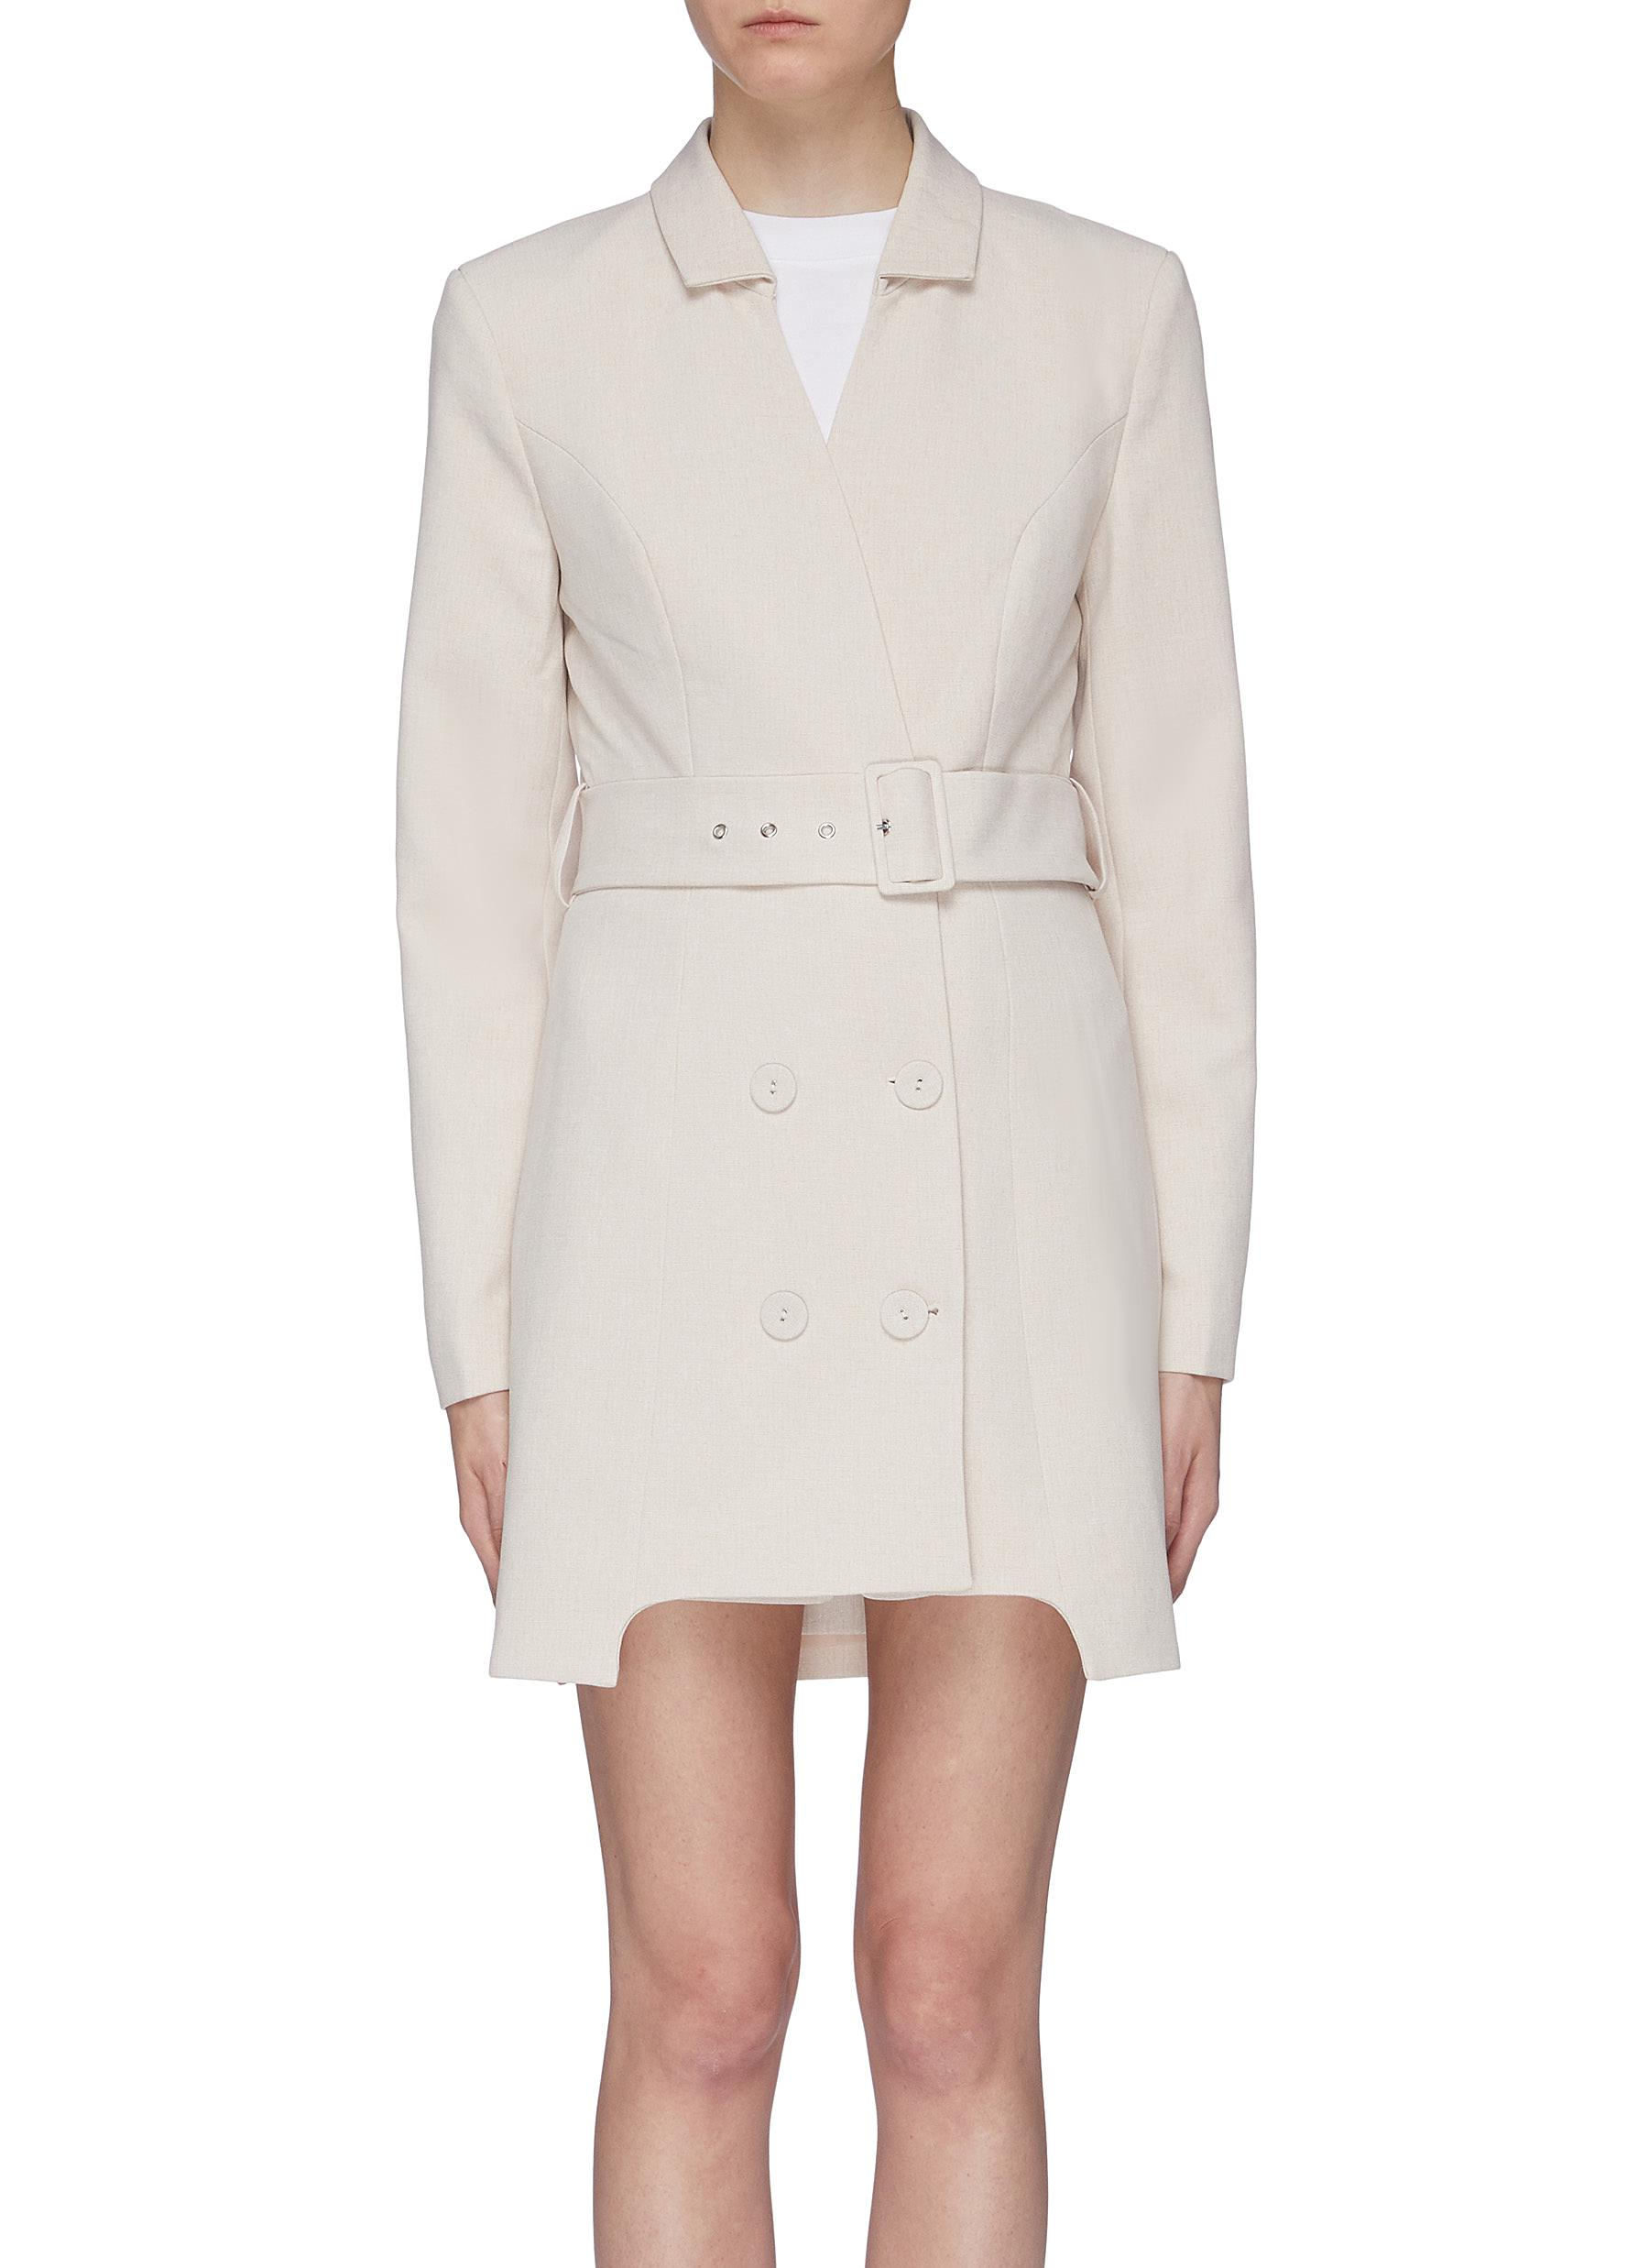 Buy C/Meo Collective Dresses 'Mode' belted staggered hem double breasted dress